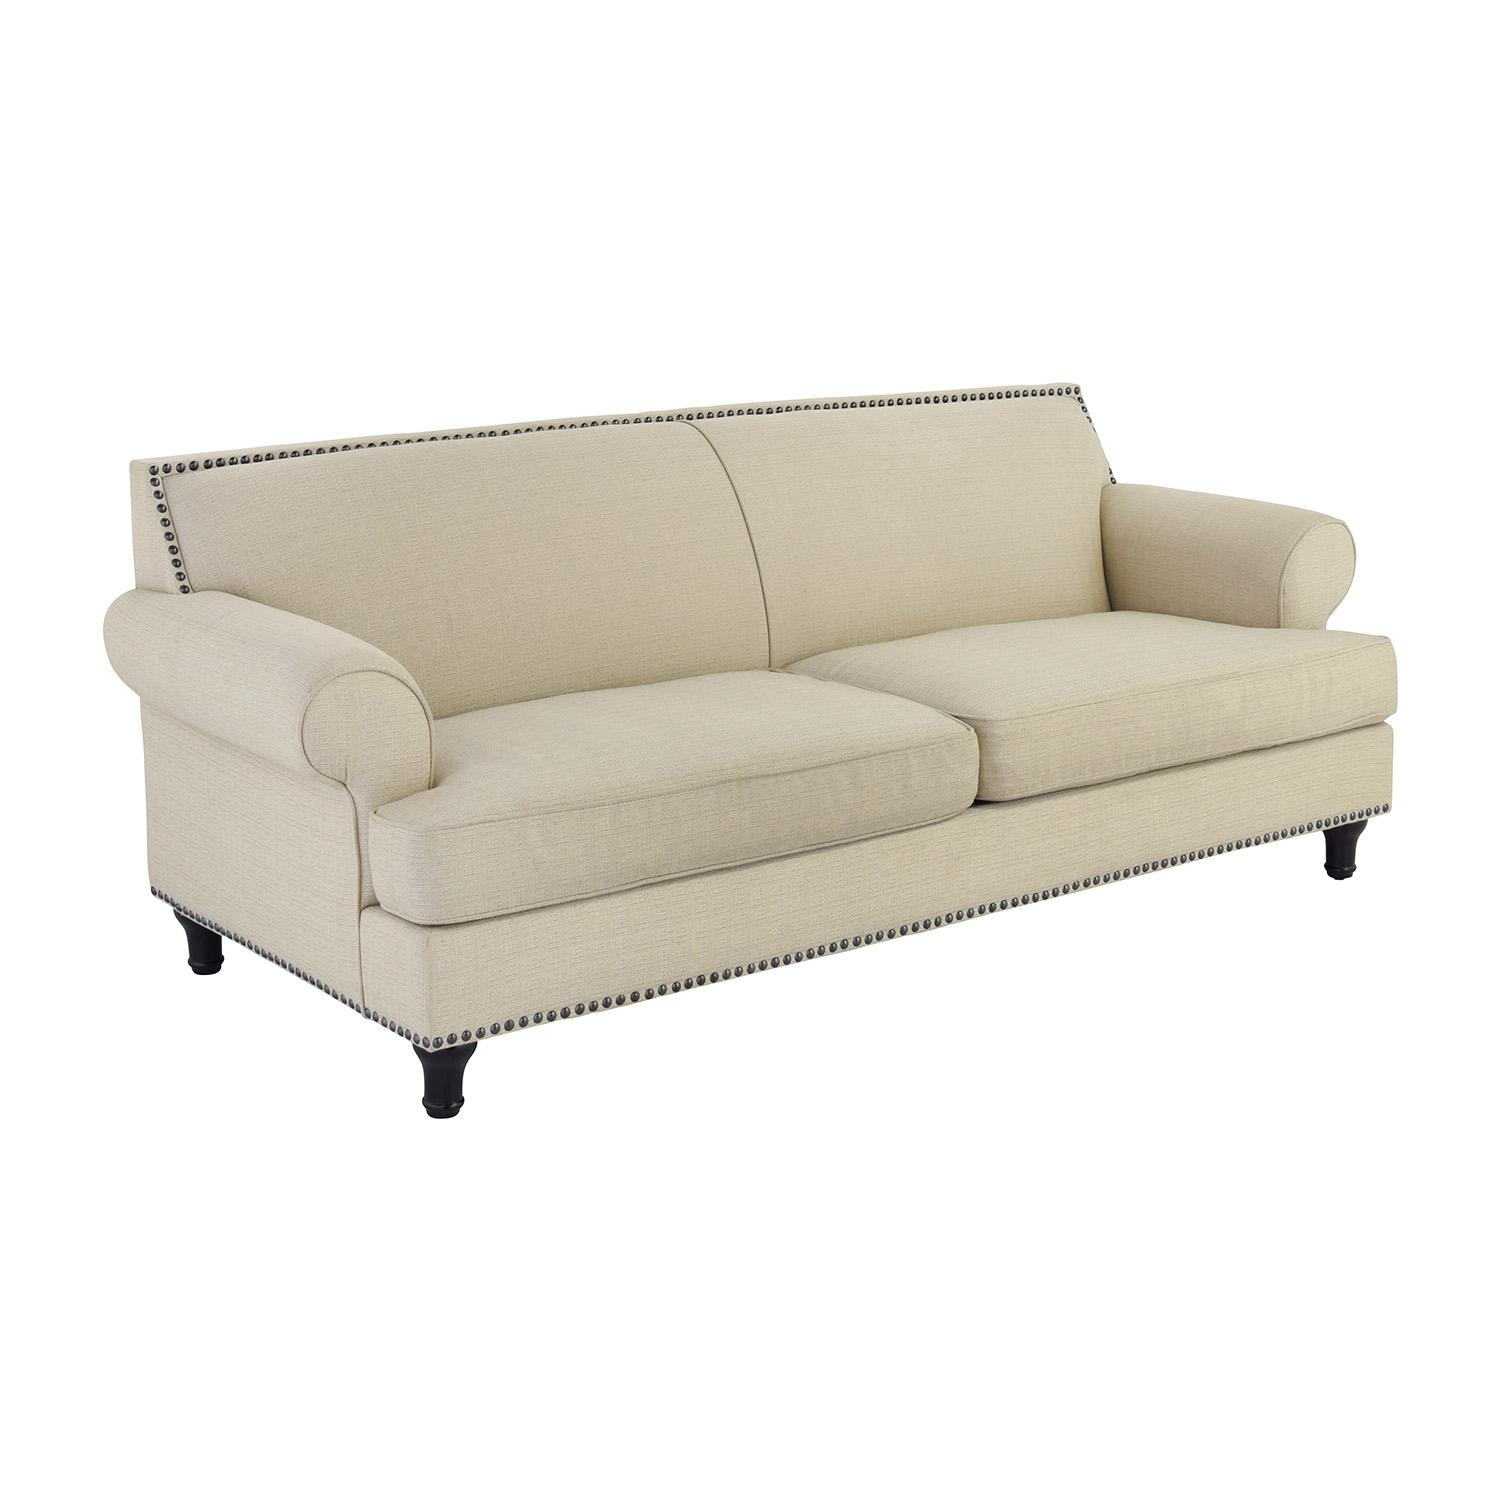 48% Off – Pier 1 Pier 1 Carmen Tan Couch With Studs / Sofas Regarding Pier One Carmen Sofas (View 3 of 20)